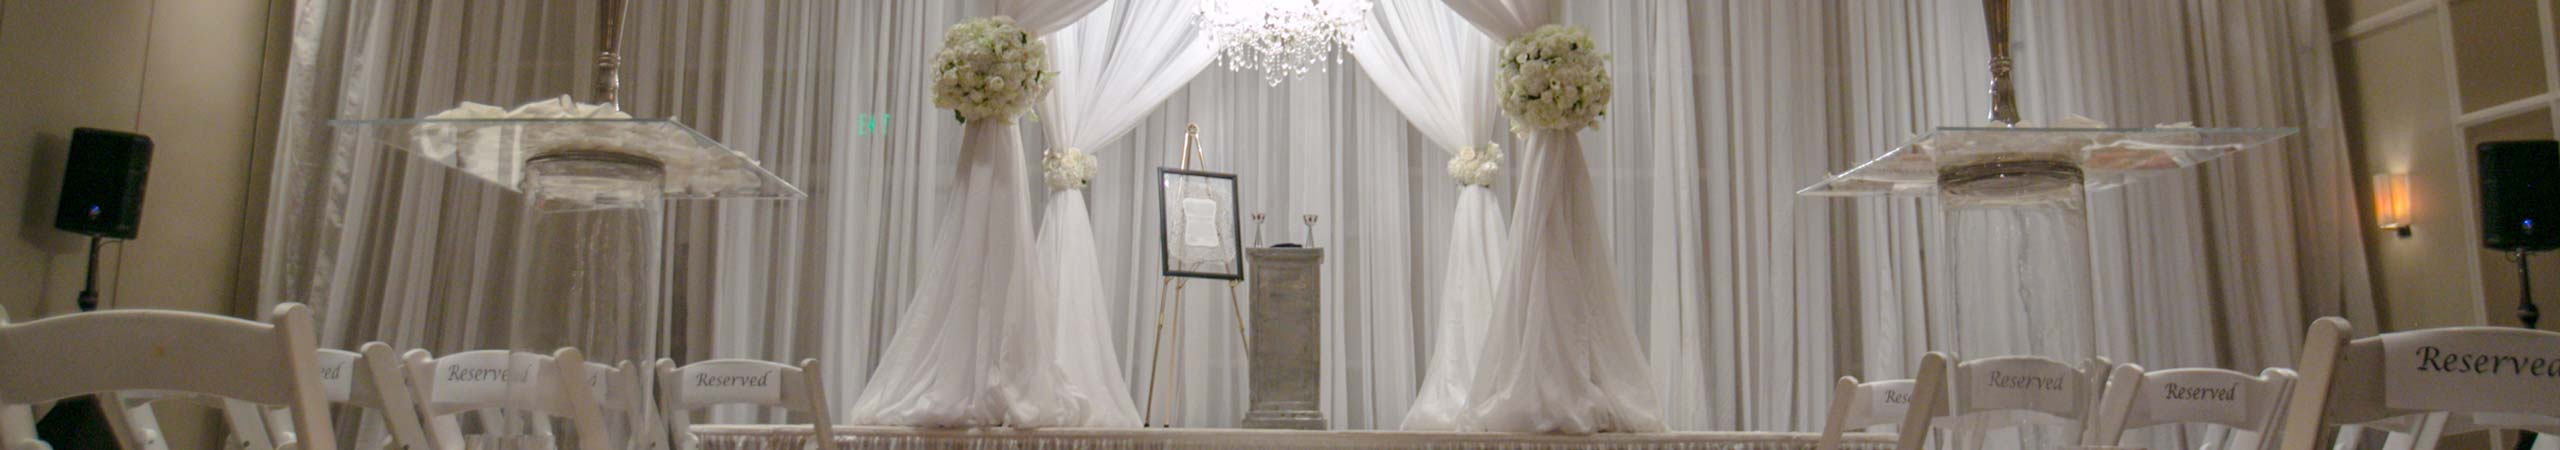 Jacksonville Wedding Decor